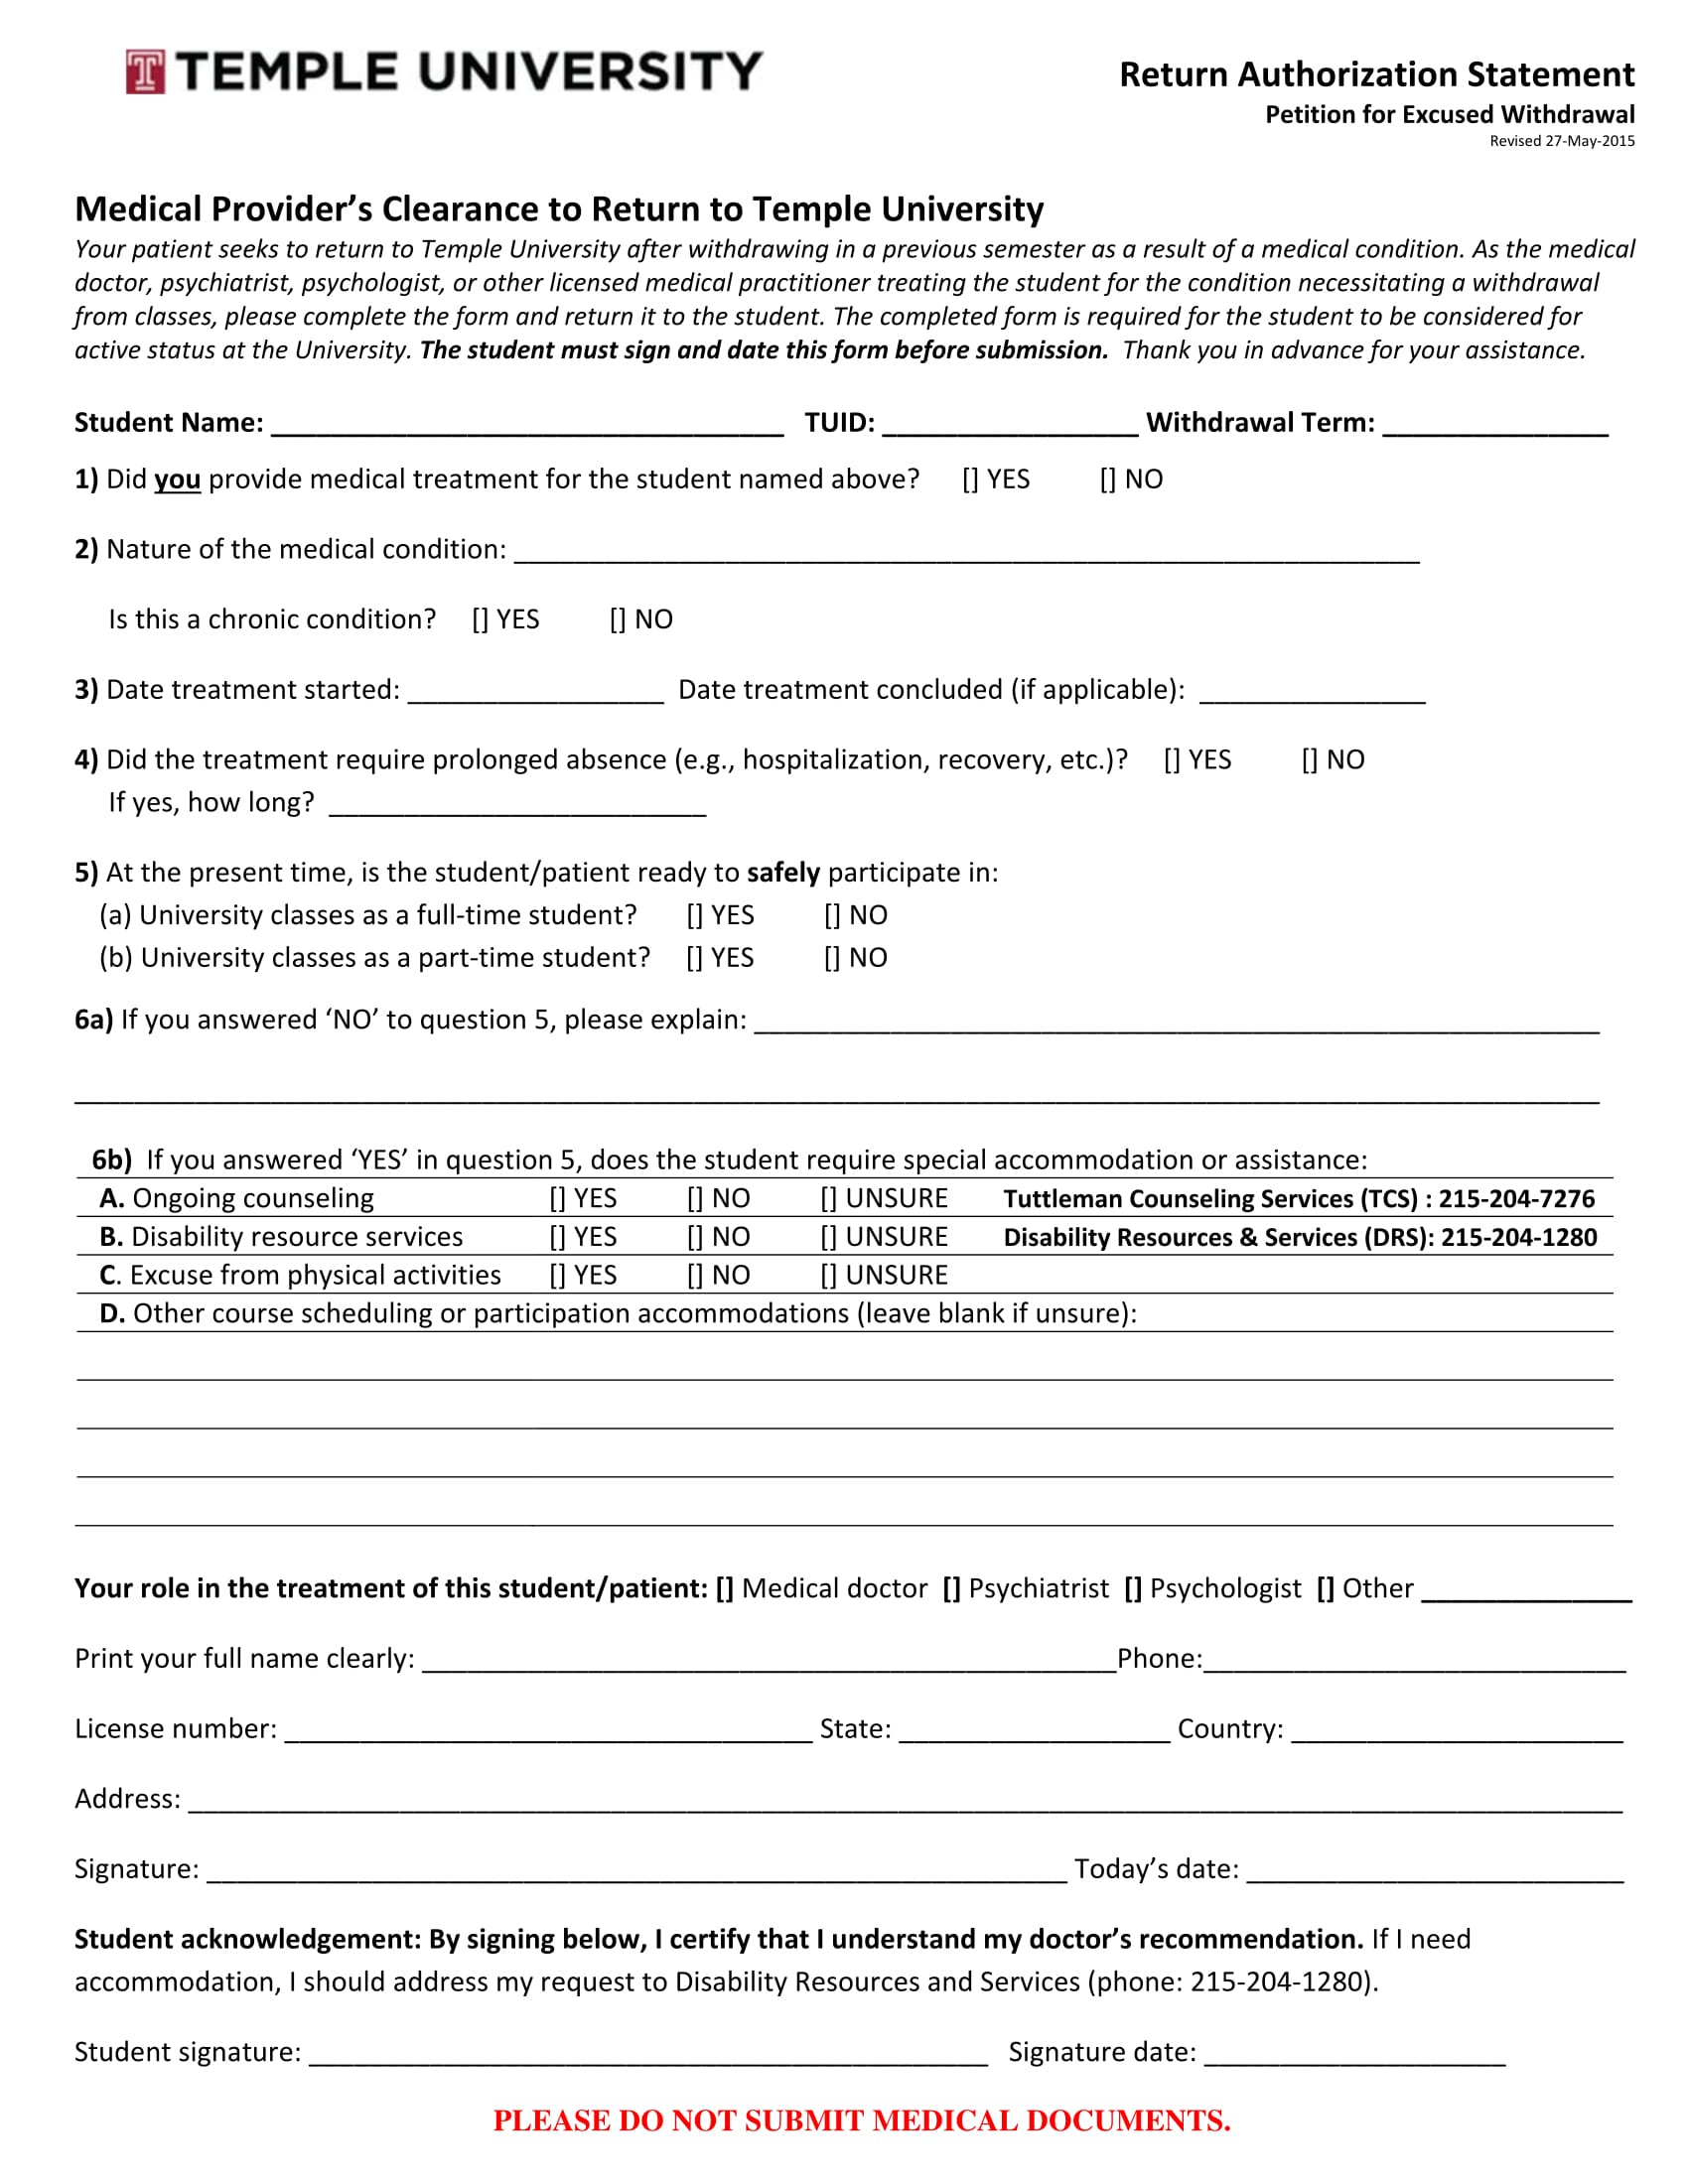 medical providers clearance form 1